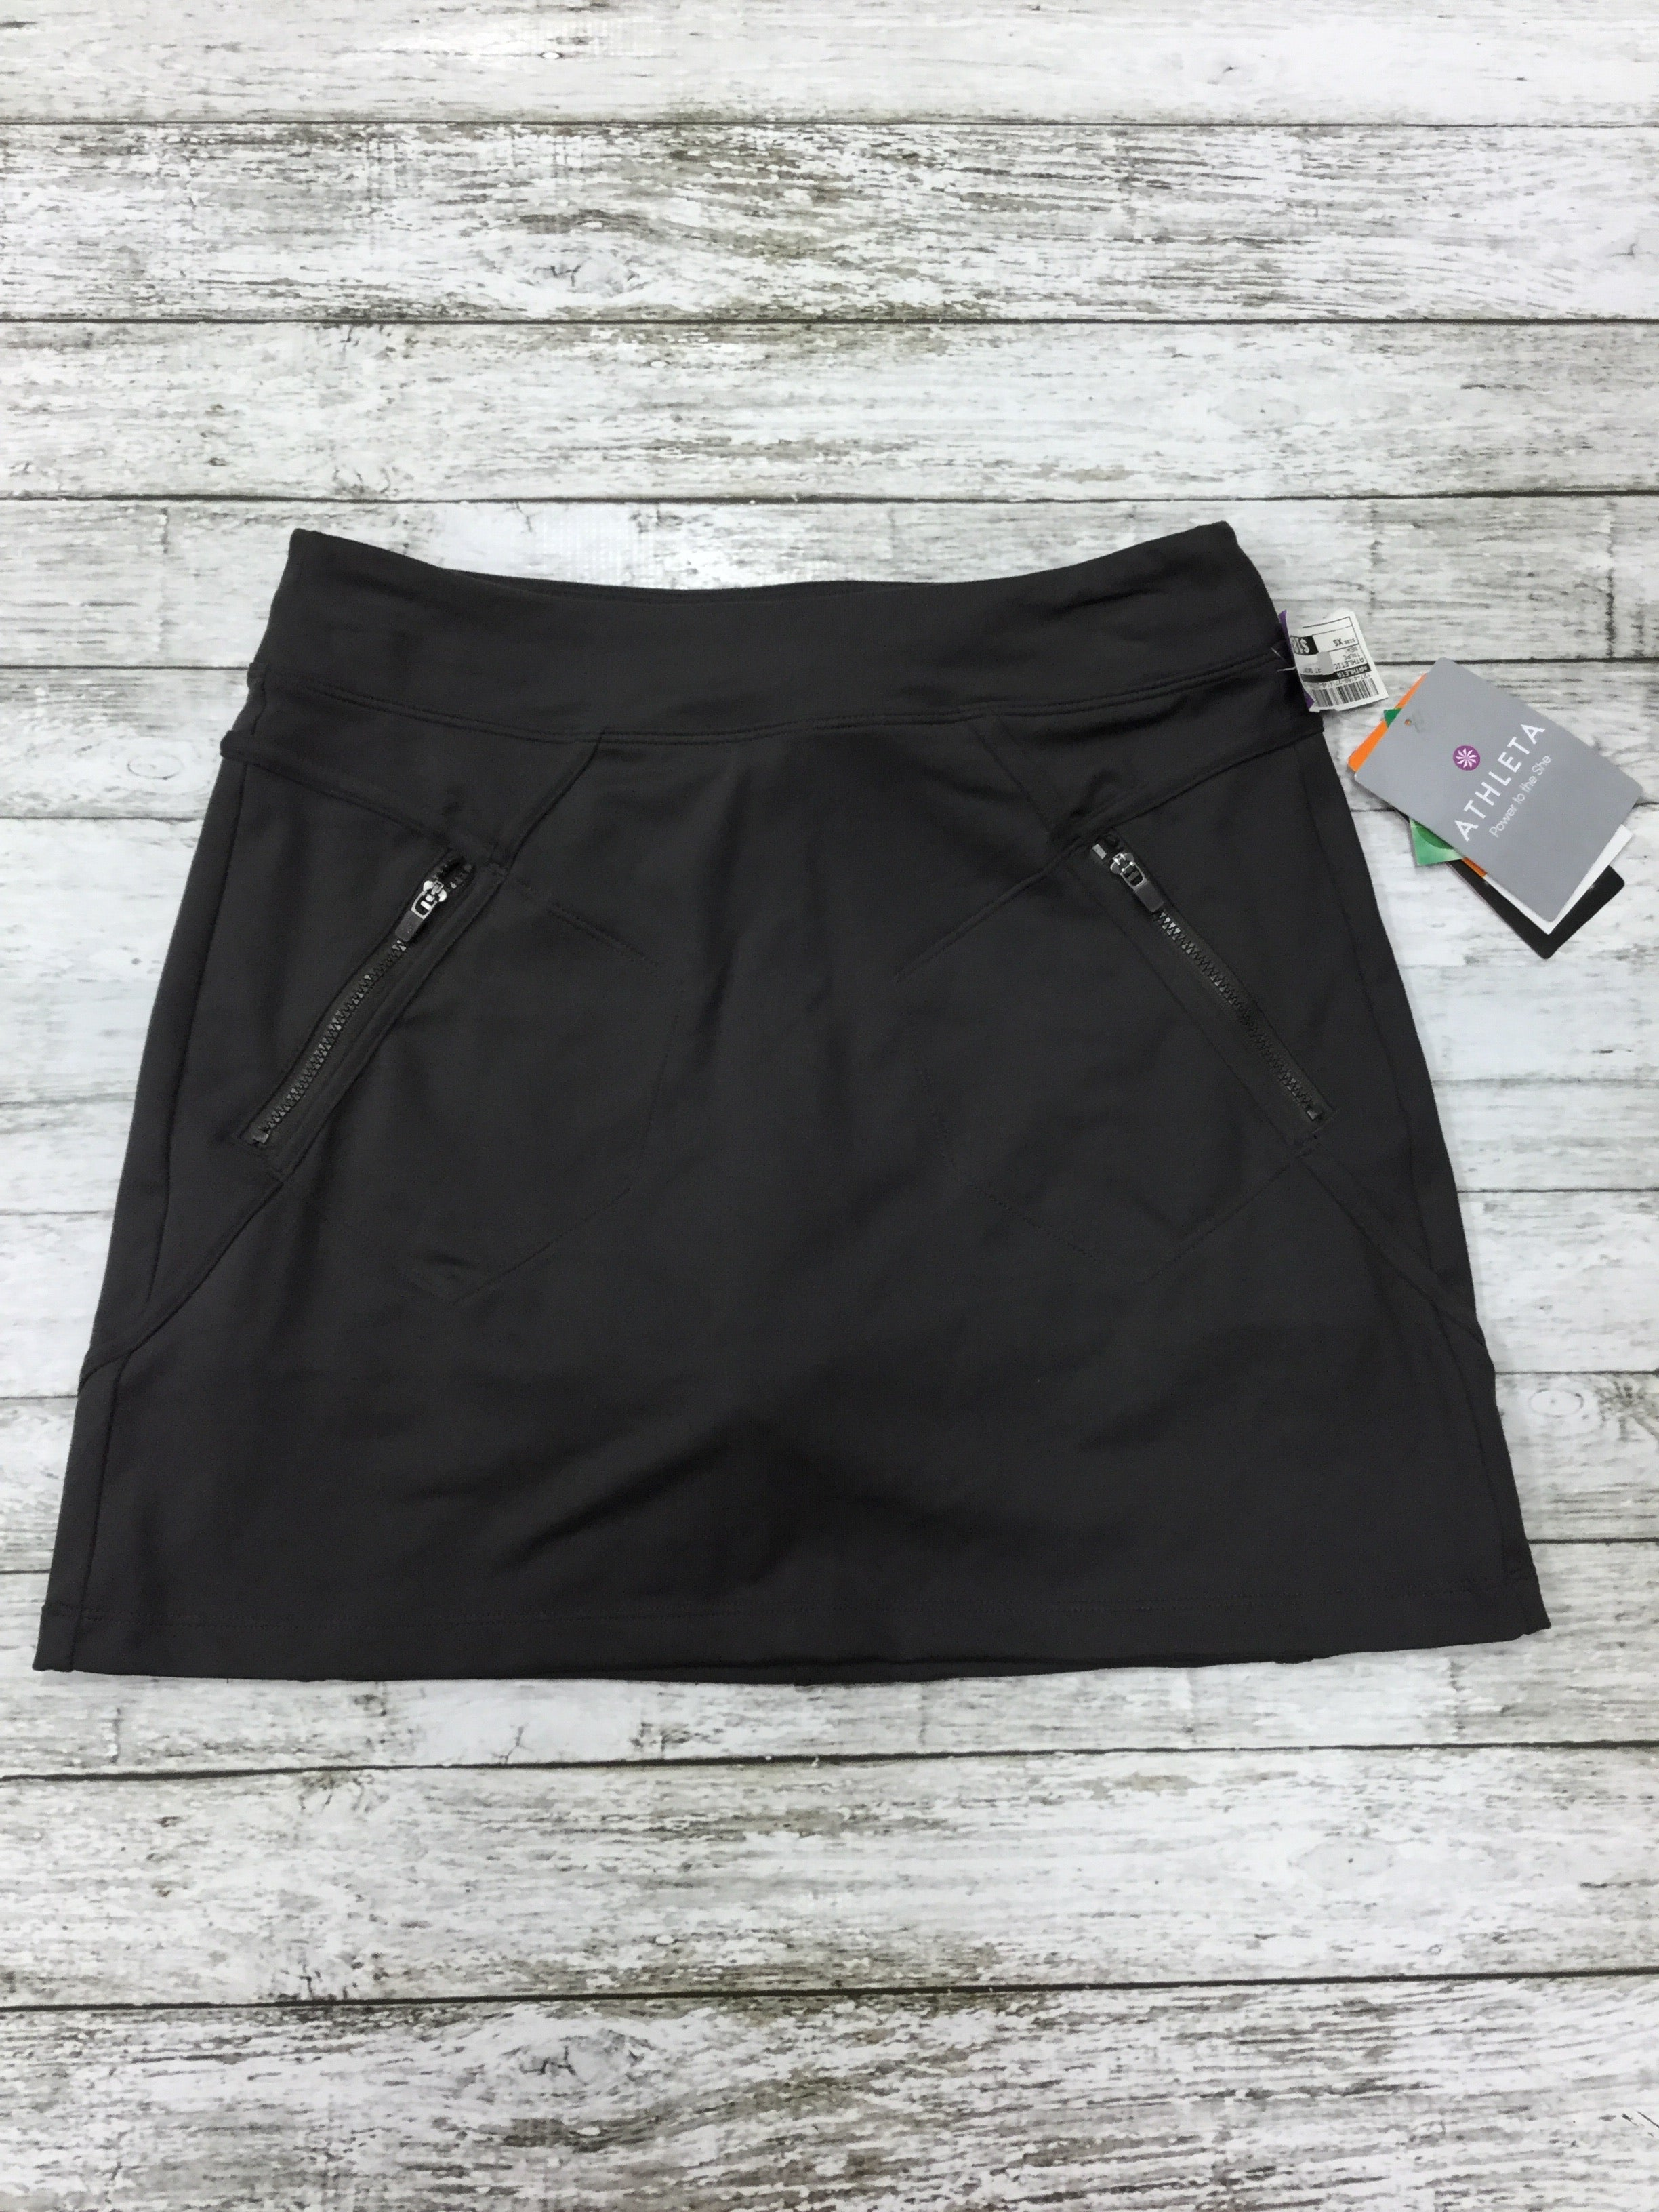 Primary Photo - BRAND: ATHLETA , STYLE: ATHLETIC SKIRT SKORT , COLOR: TAUPE , SIZE: XS , OTHER INFO: NEW! , SKU: 127-4169-27141